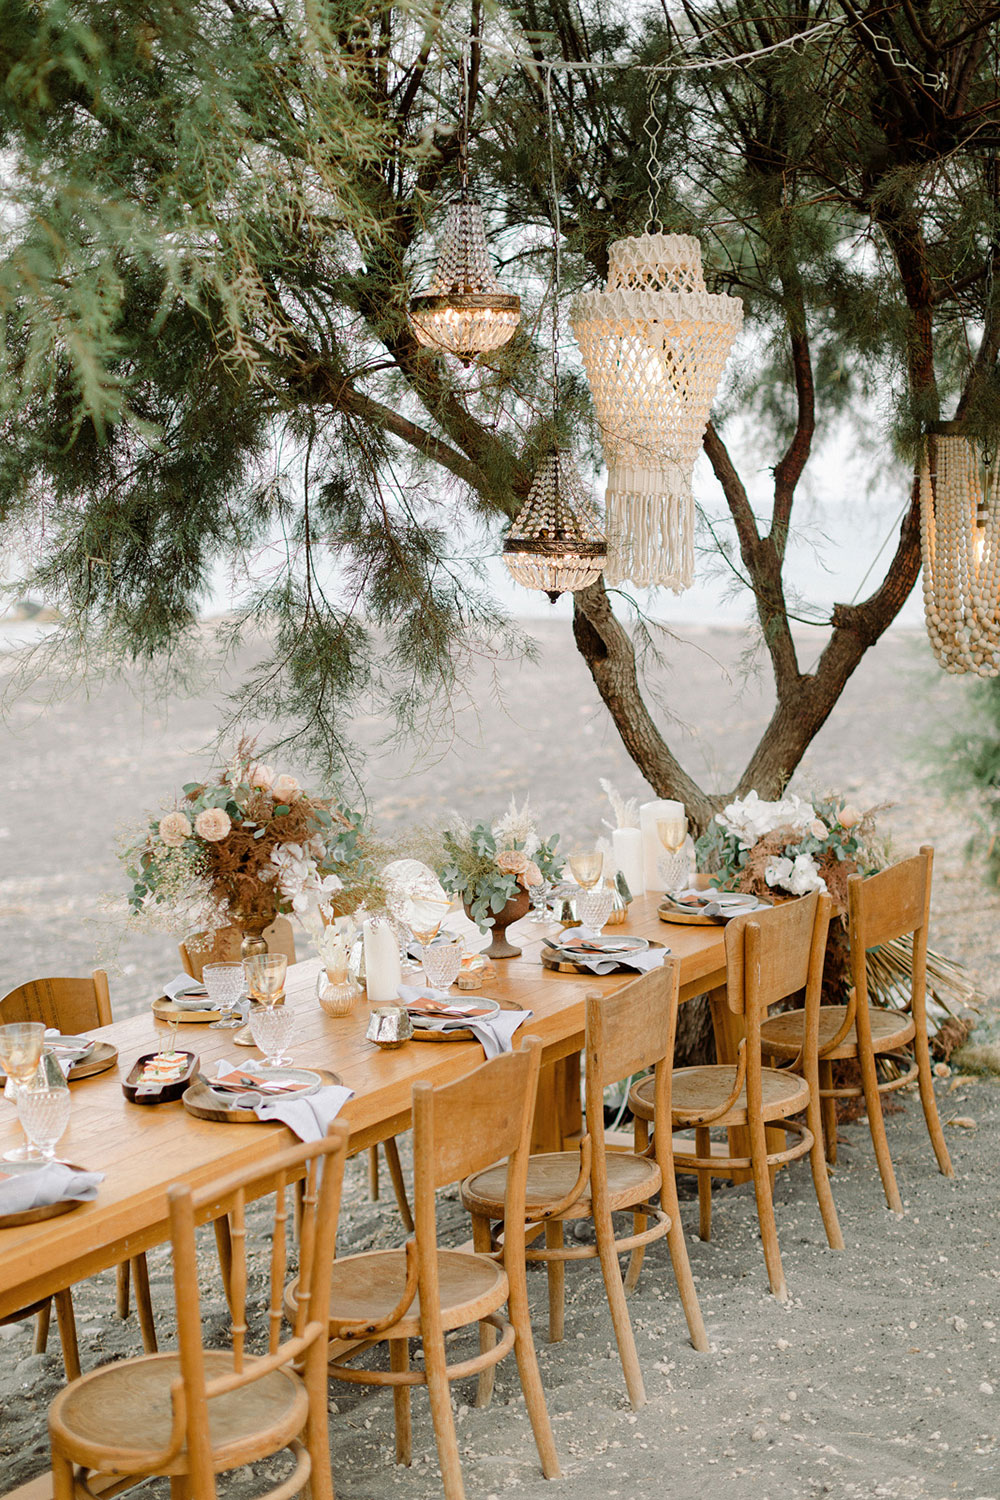 macrame decor is perfect for a seaside wedding